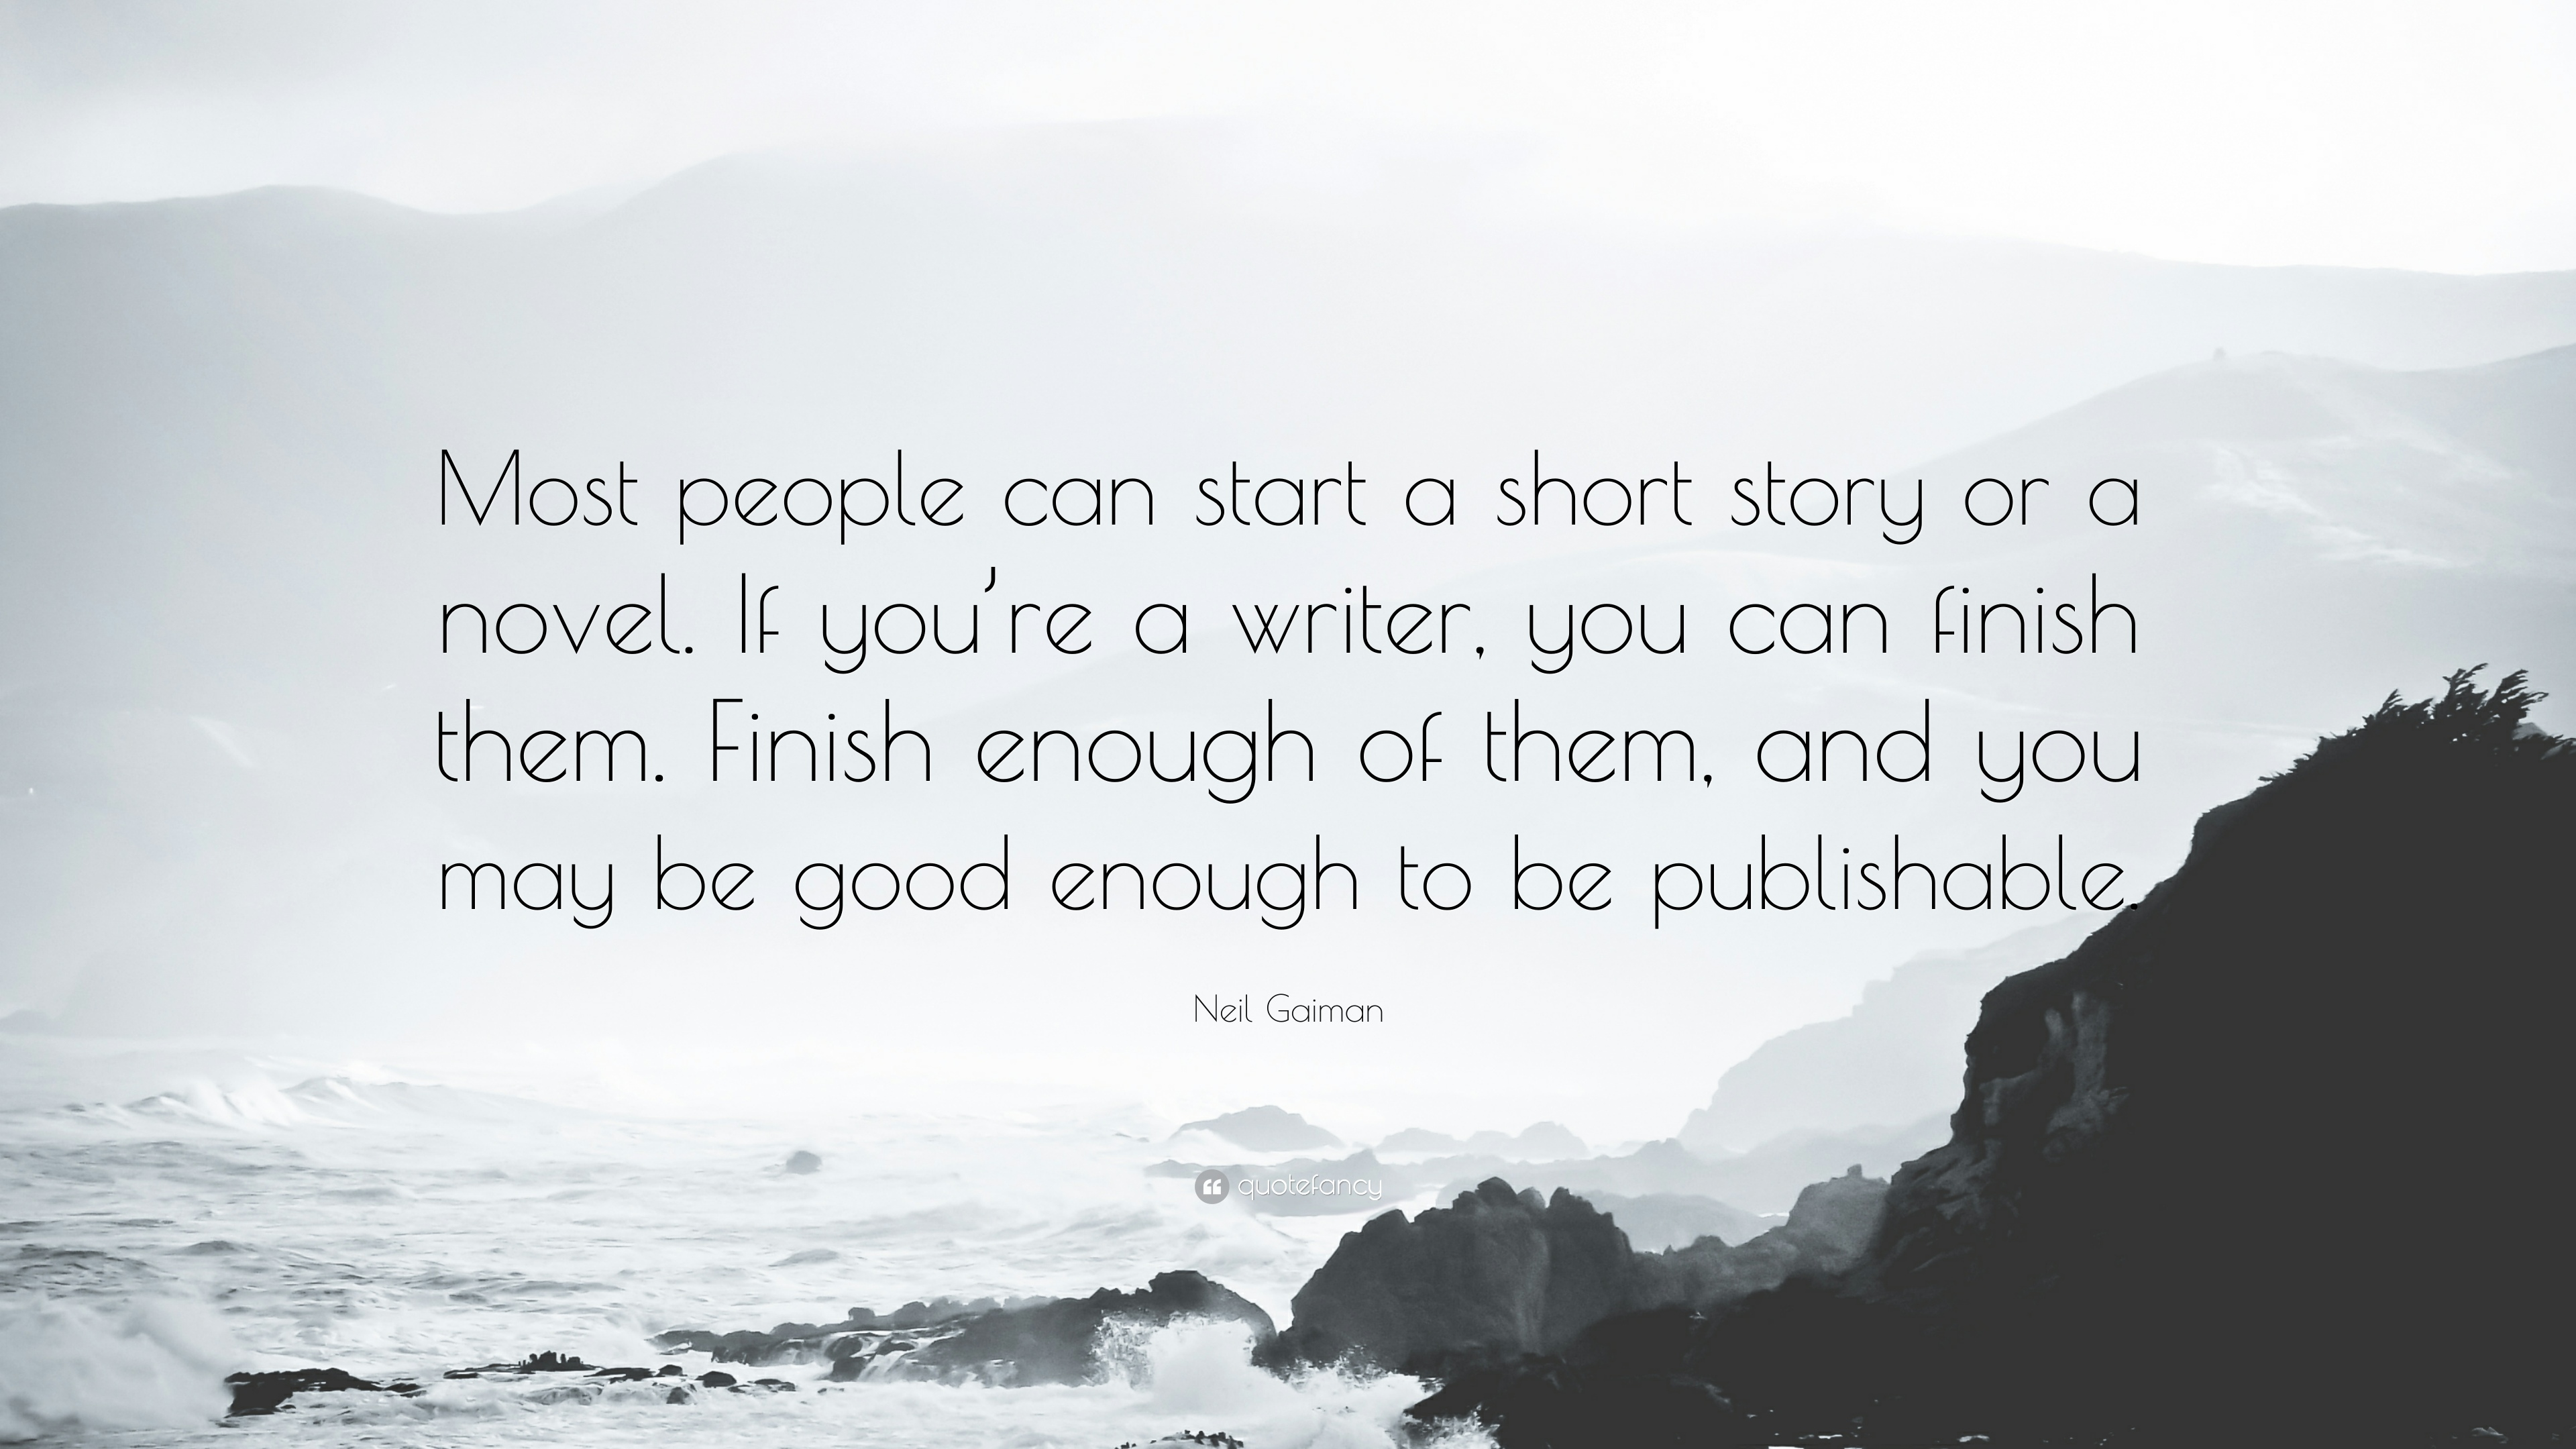 How can i begin to write a short story with a strong beginning ?